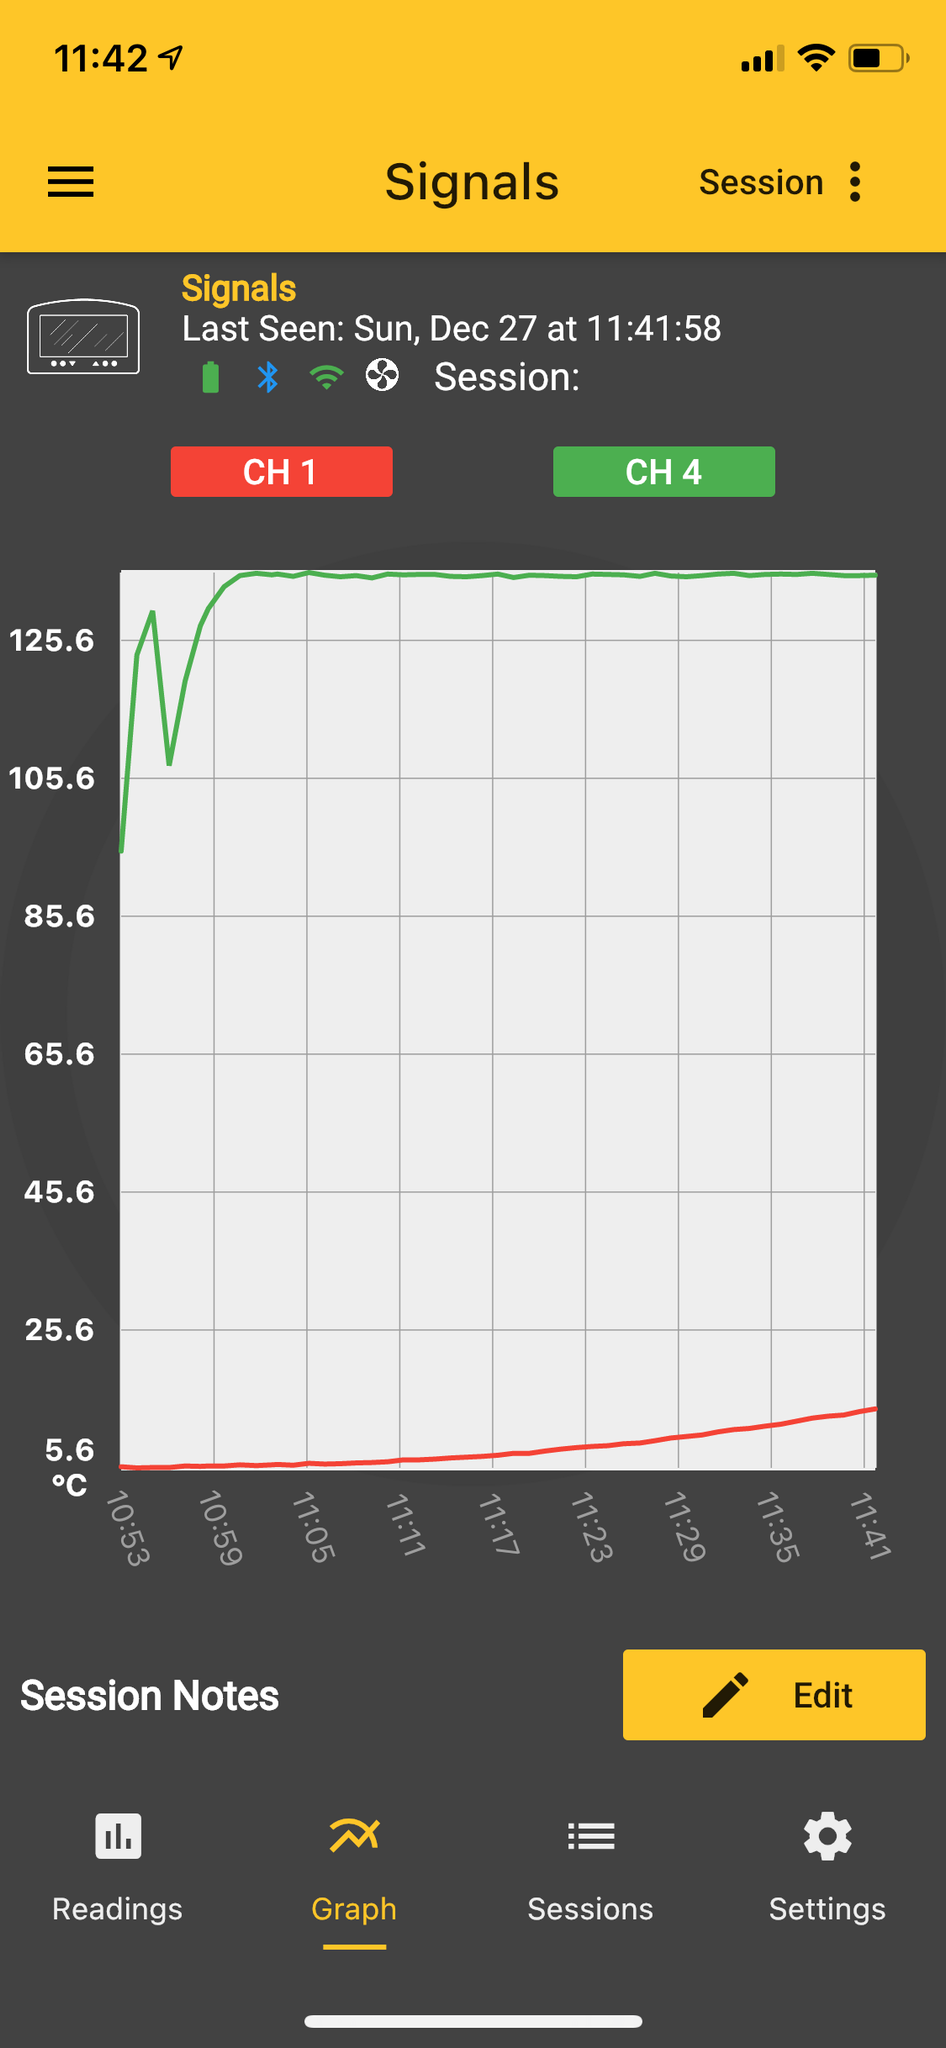 A screenshot from the ThermoWorks app, showing a graph with the ambient smoker temperature solidly at 135° for the past almost hour.